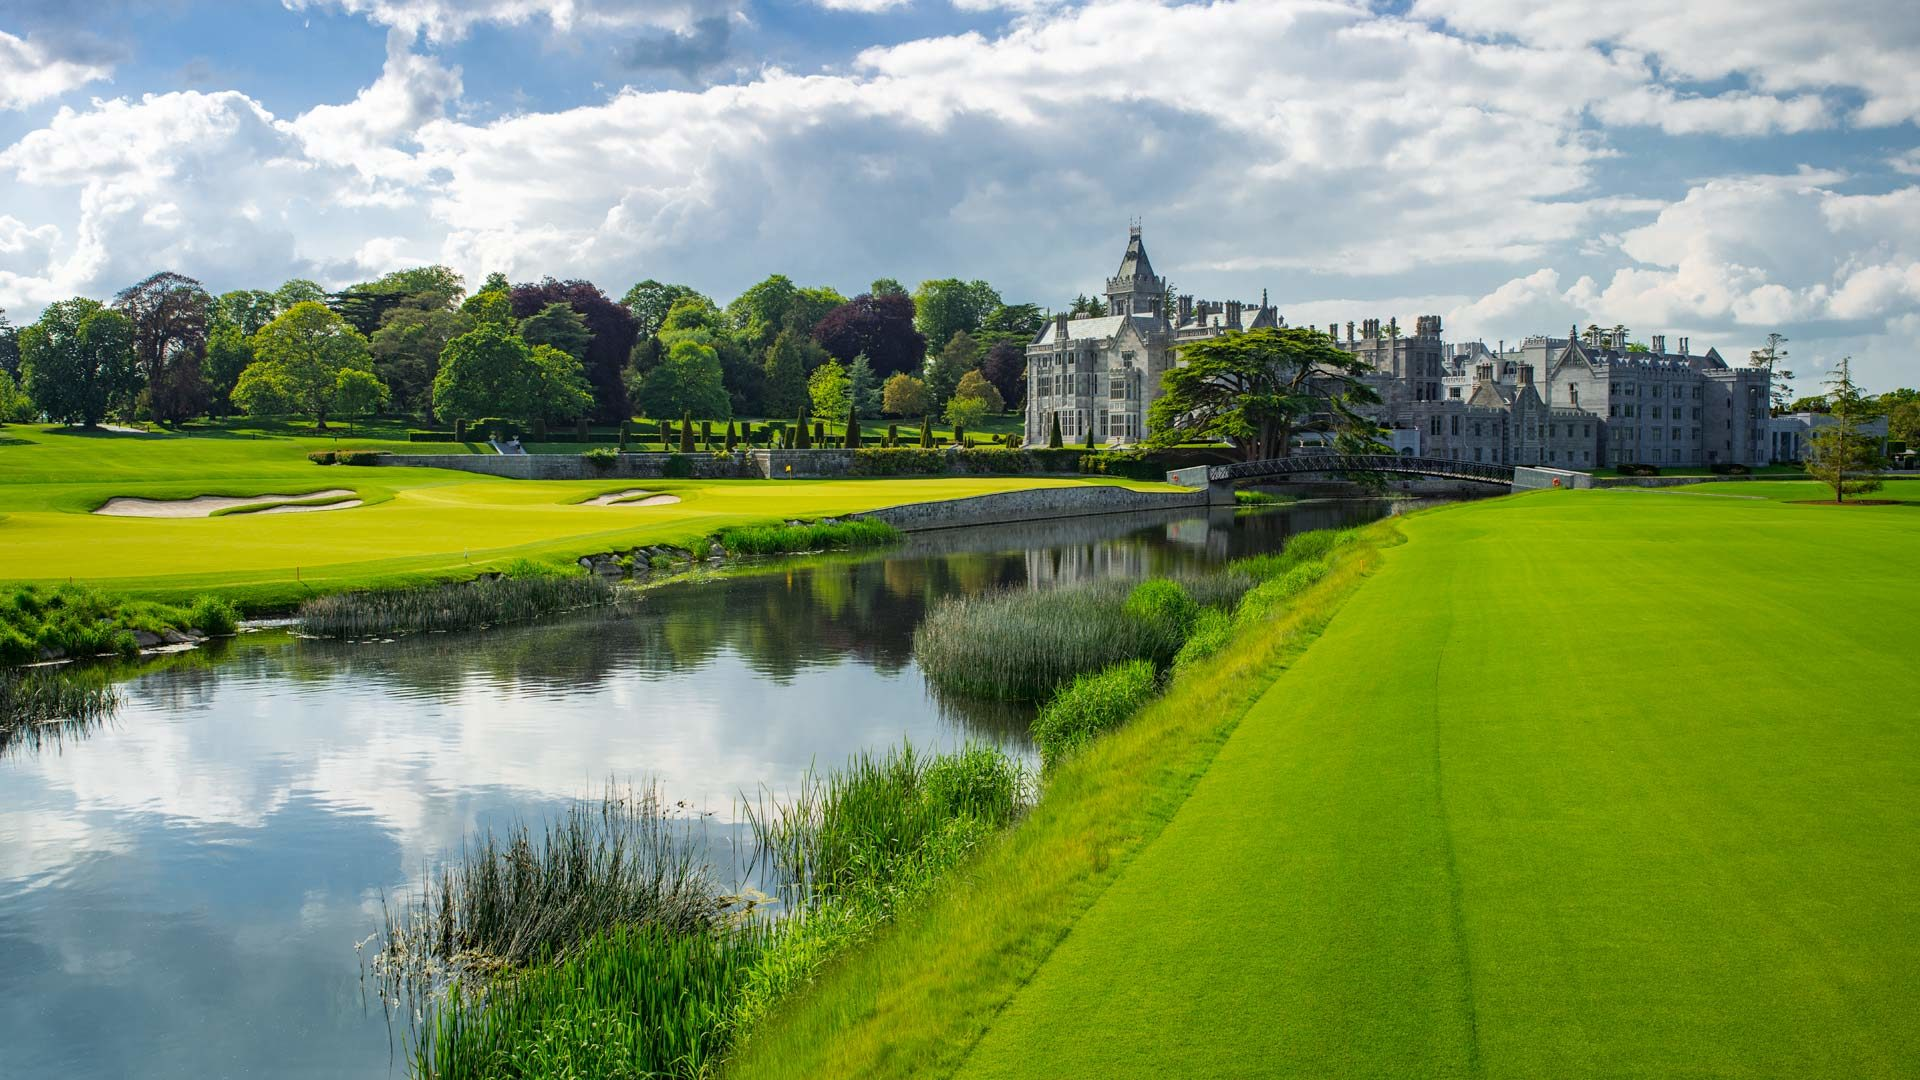 18-golf-at-adare-manor-37-1-1920x1080